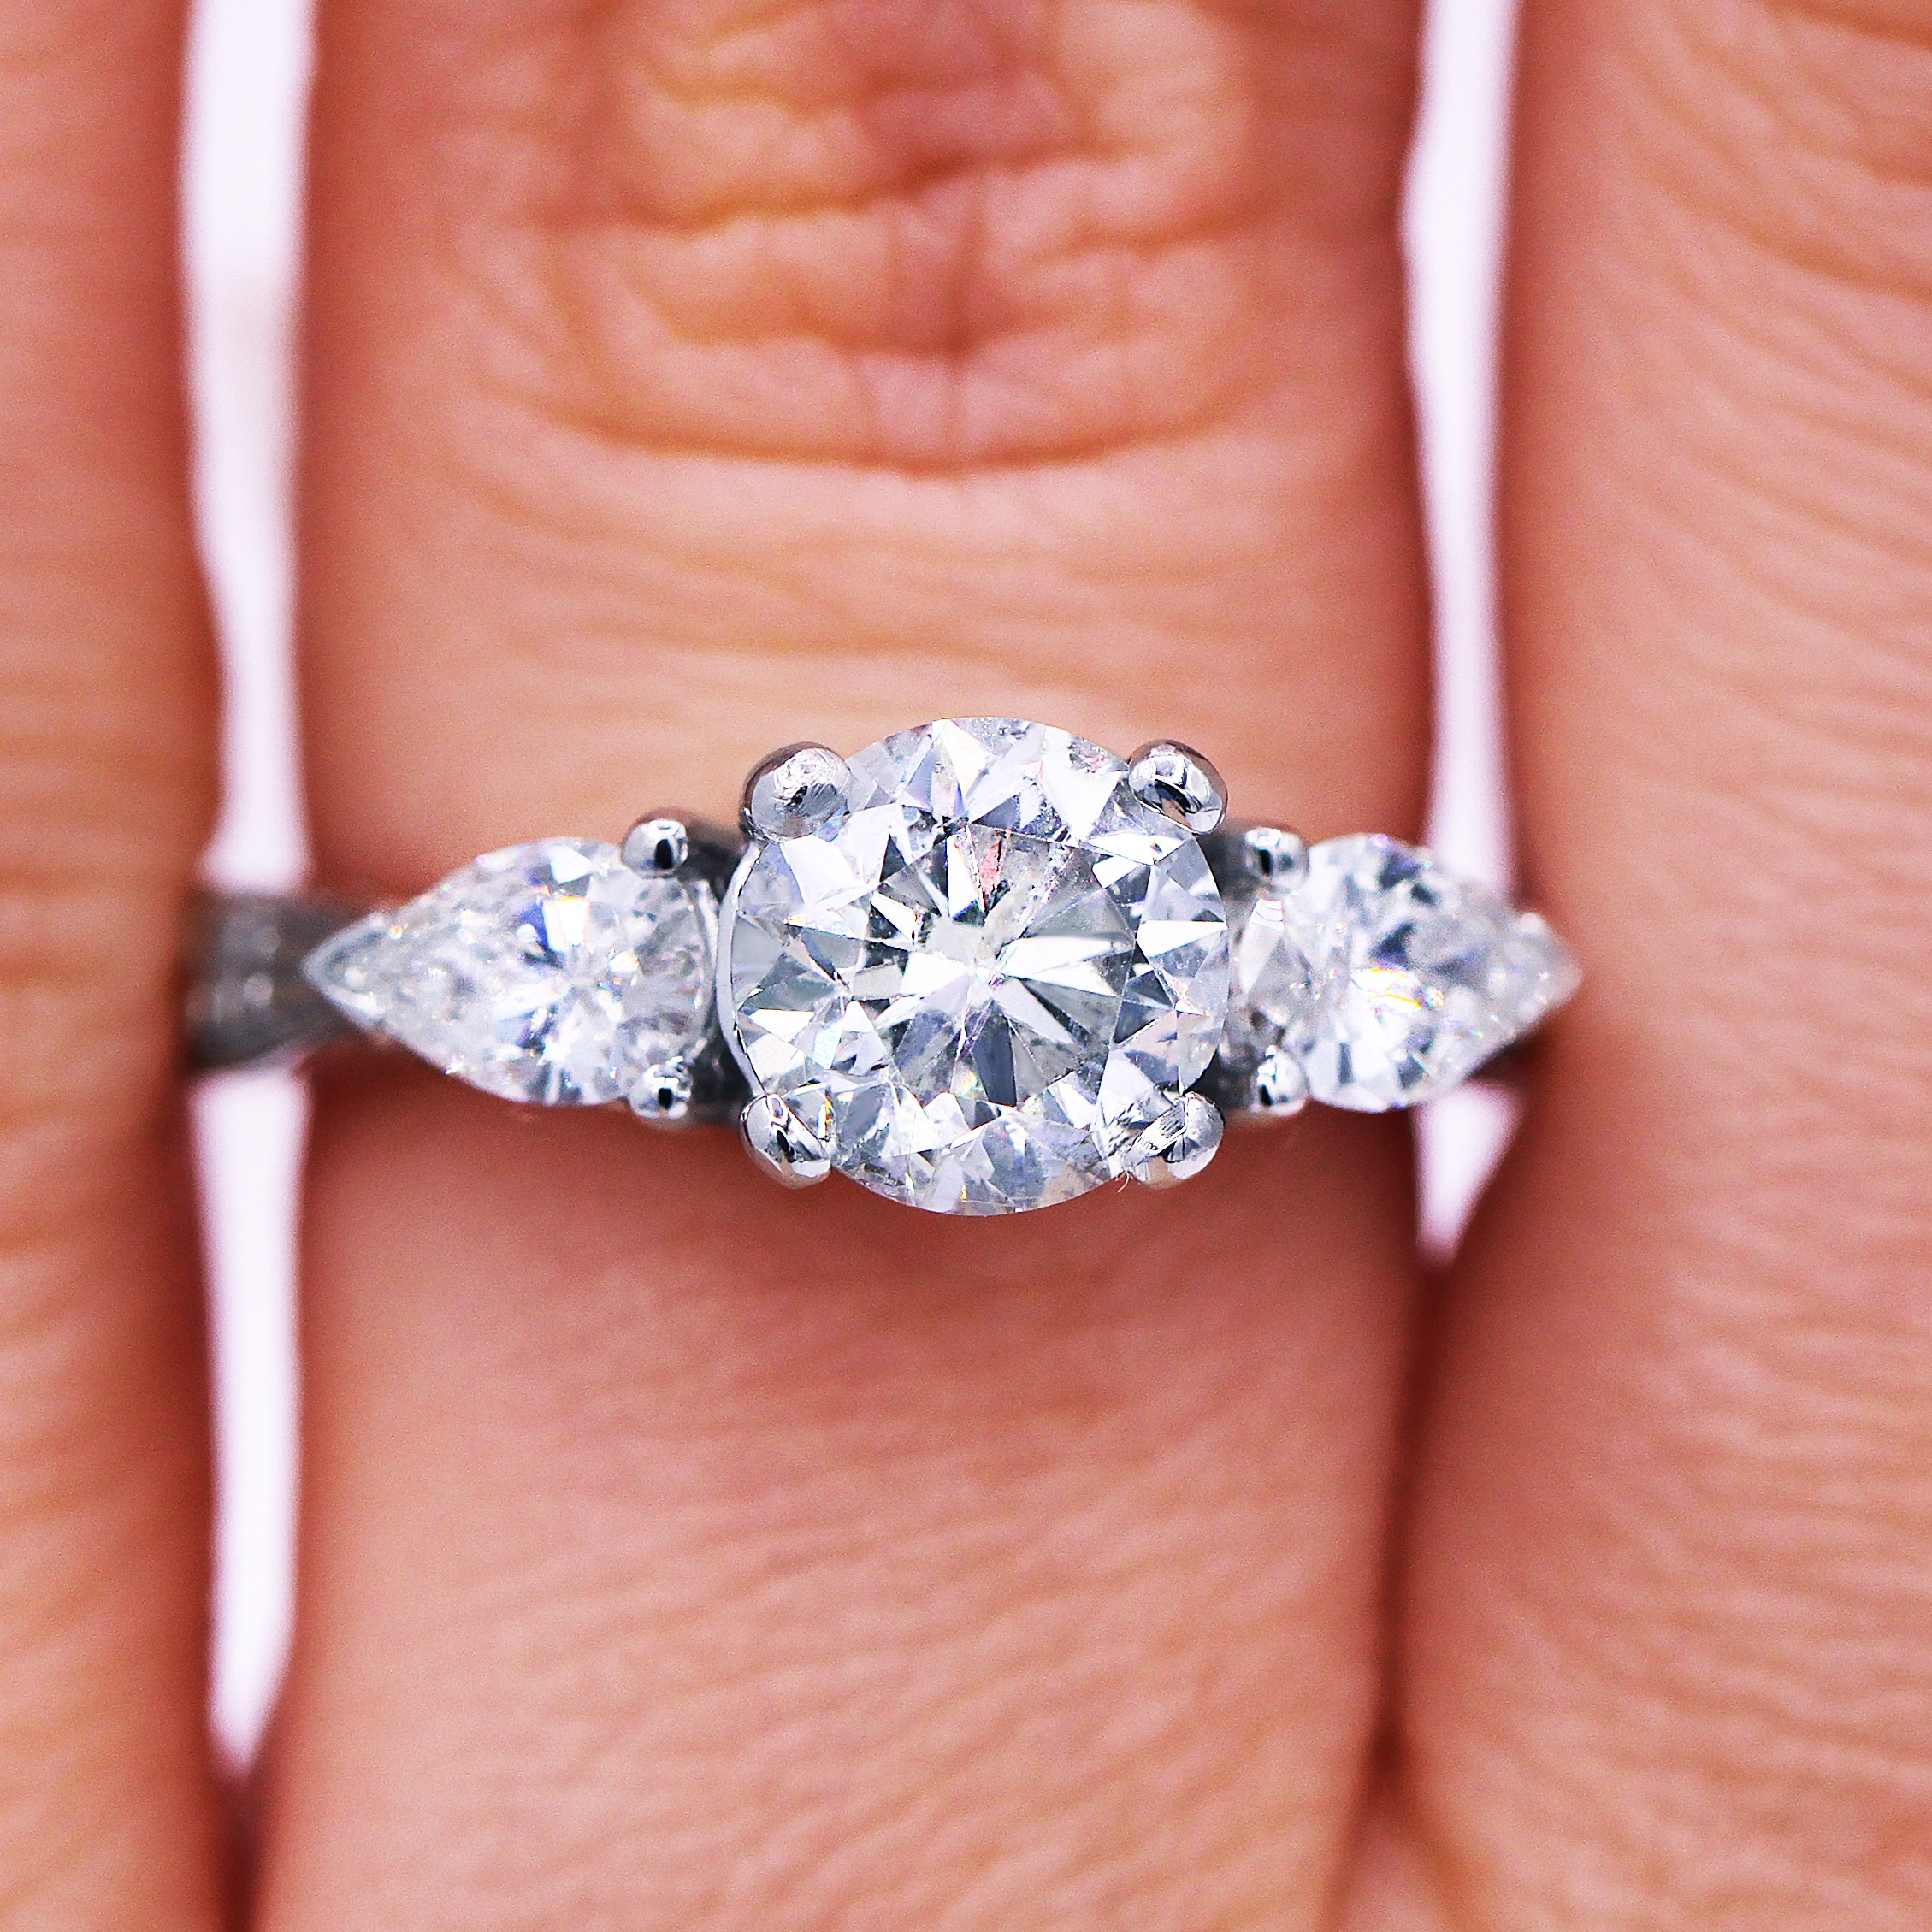 1.57 Ct Round Diamond Engagement Ring with Pear Shape Side Stones